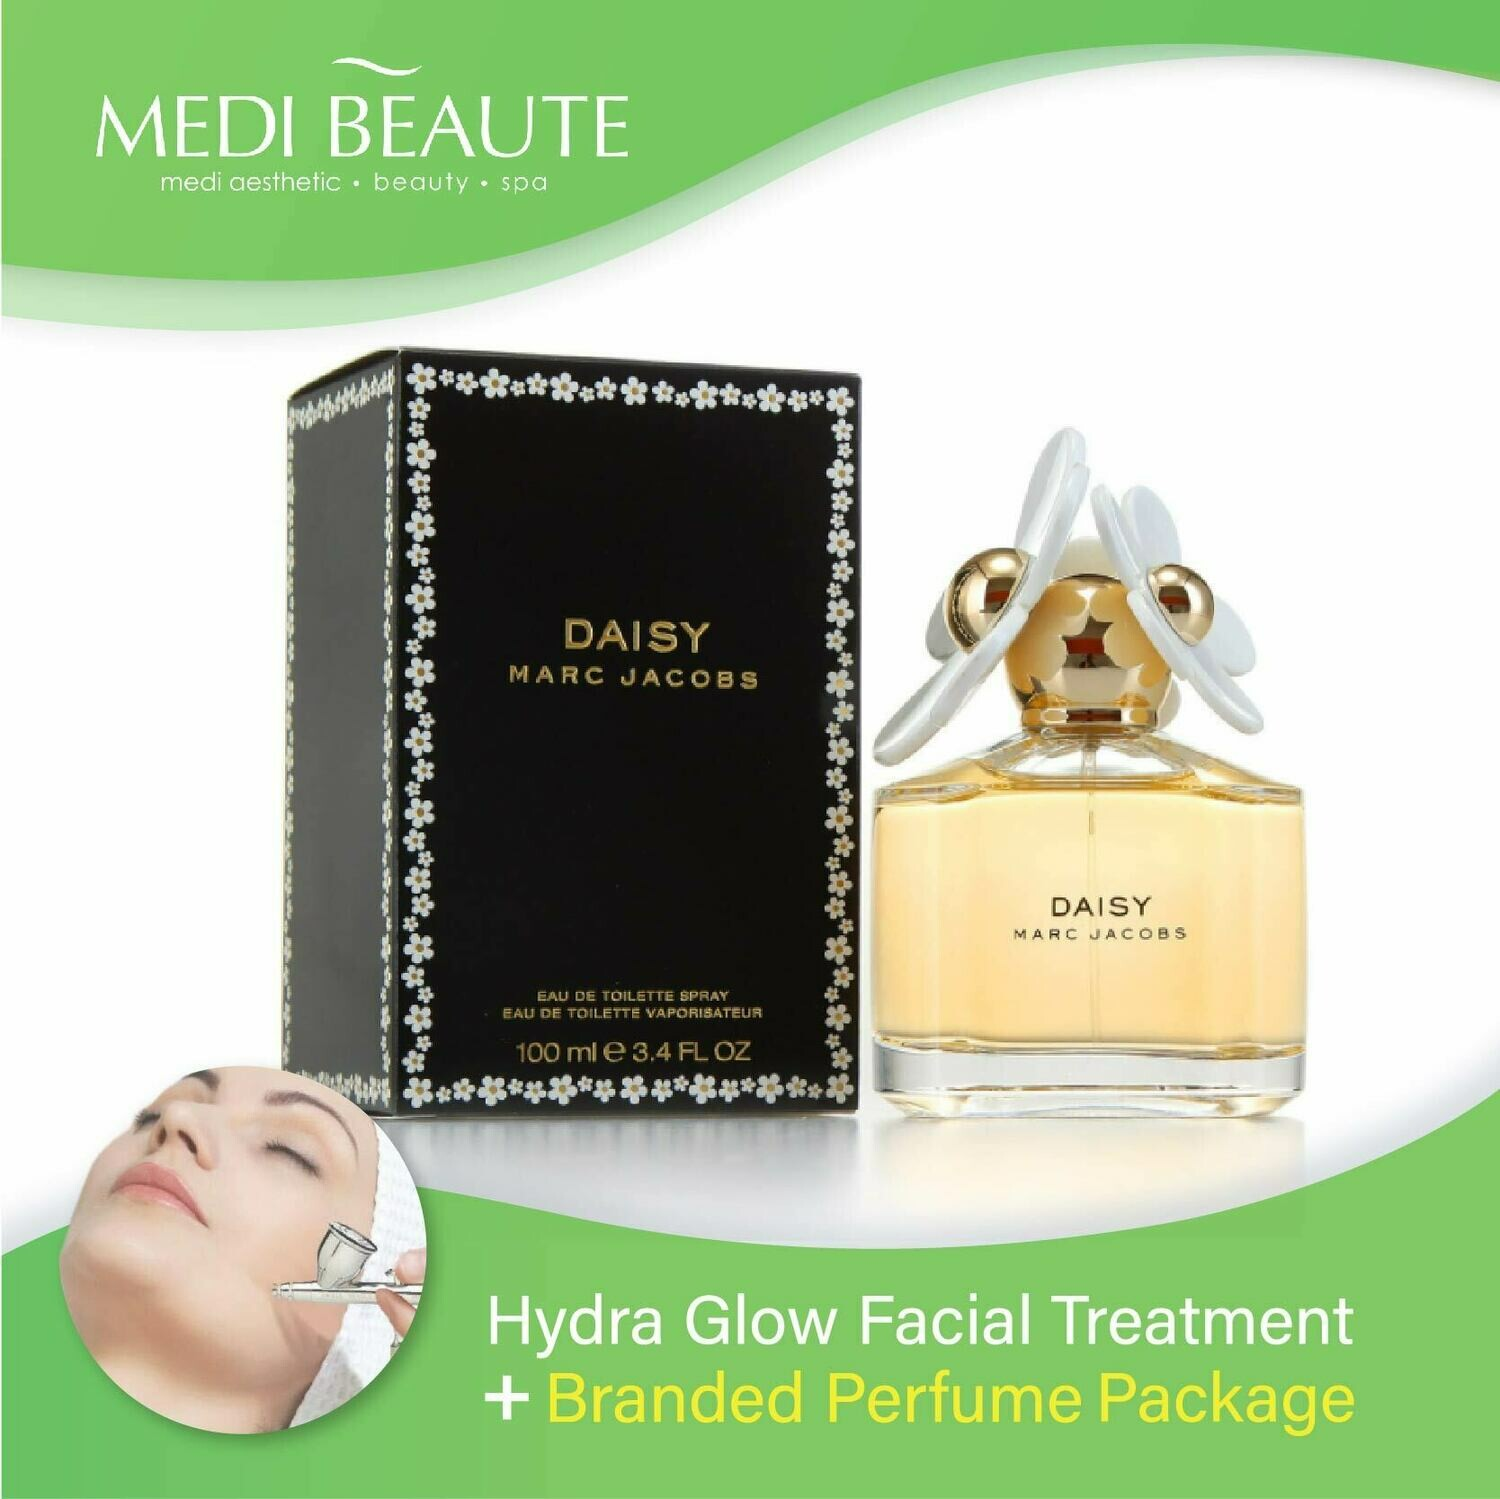 Medi Beaute Hydra Glow Facial + Branded Perfume ( Marc Jacobs Daisy EDT Lady 100ml ) Package